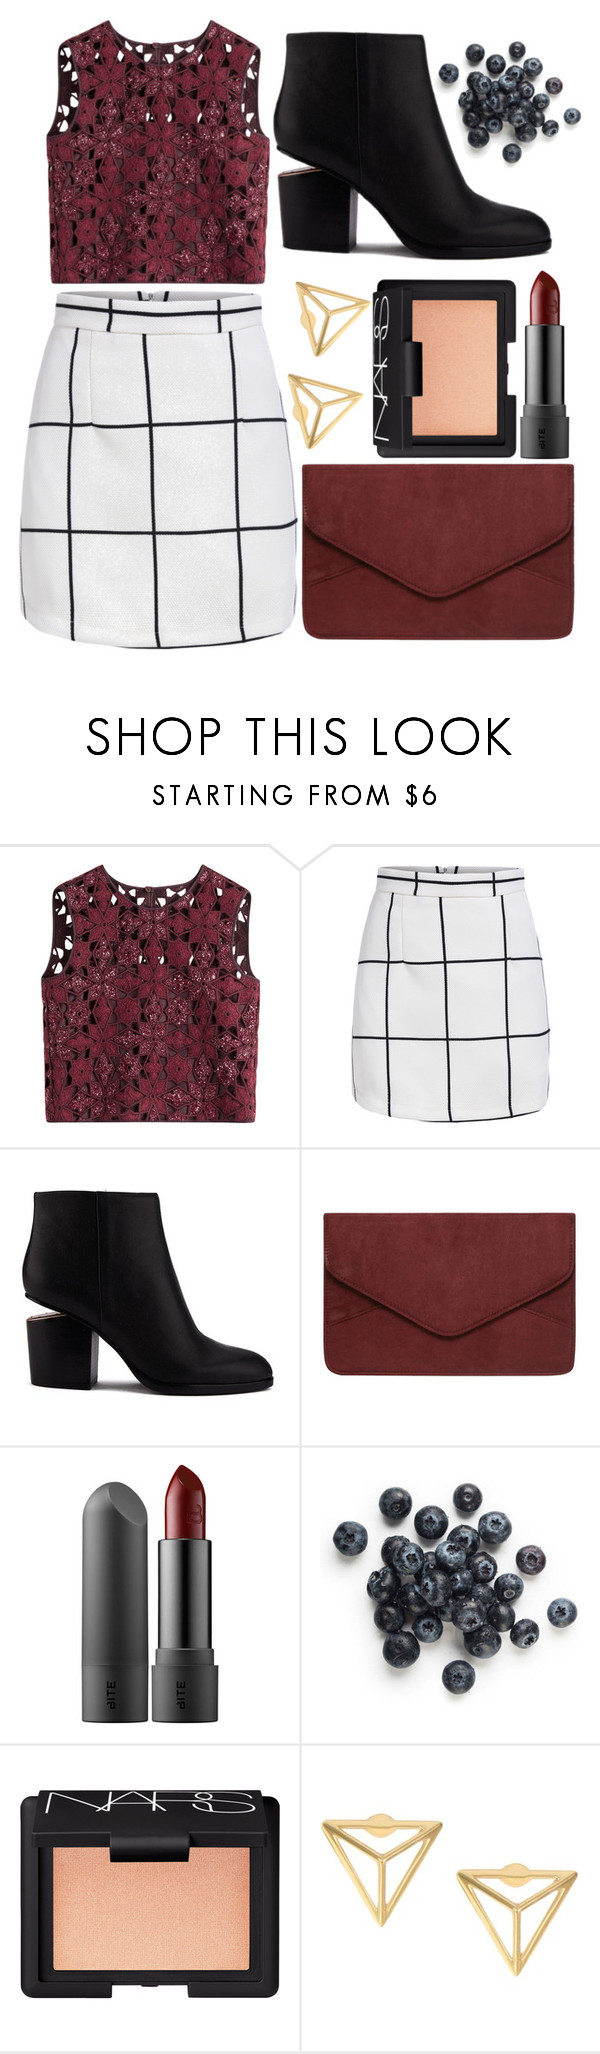 """The Fall Transition..."" by kdfashiondesigner ❤ liked on Polyvore featuring Alberta Ferretti, Alexander Wang, Dorothy Perkins and NARS Cosmetics"